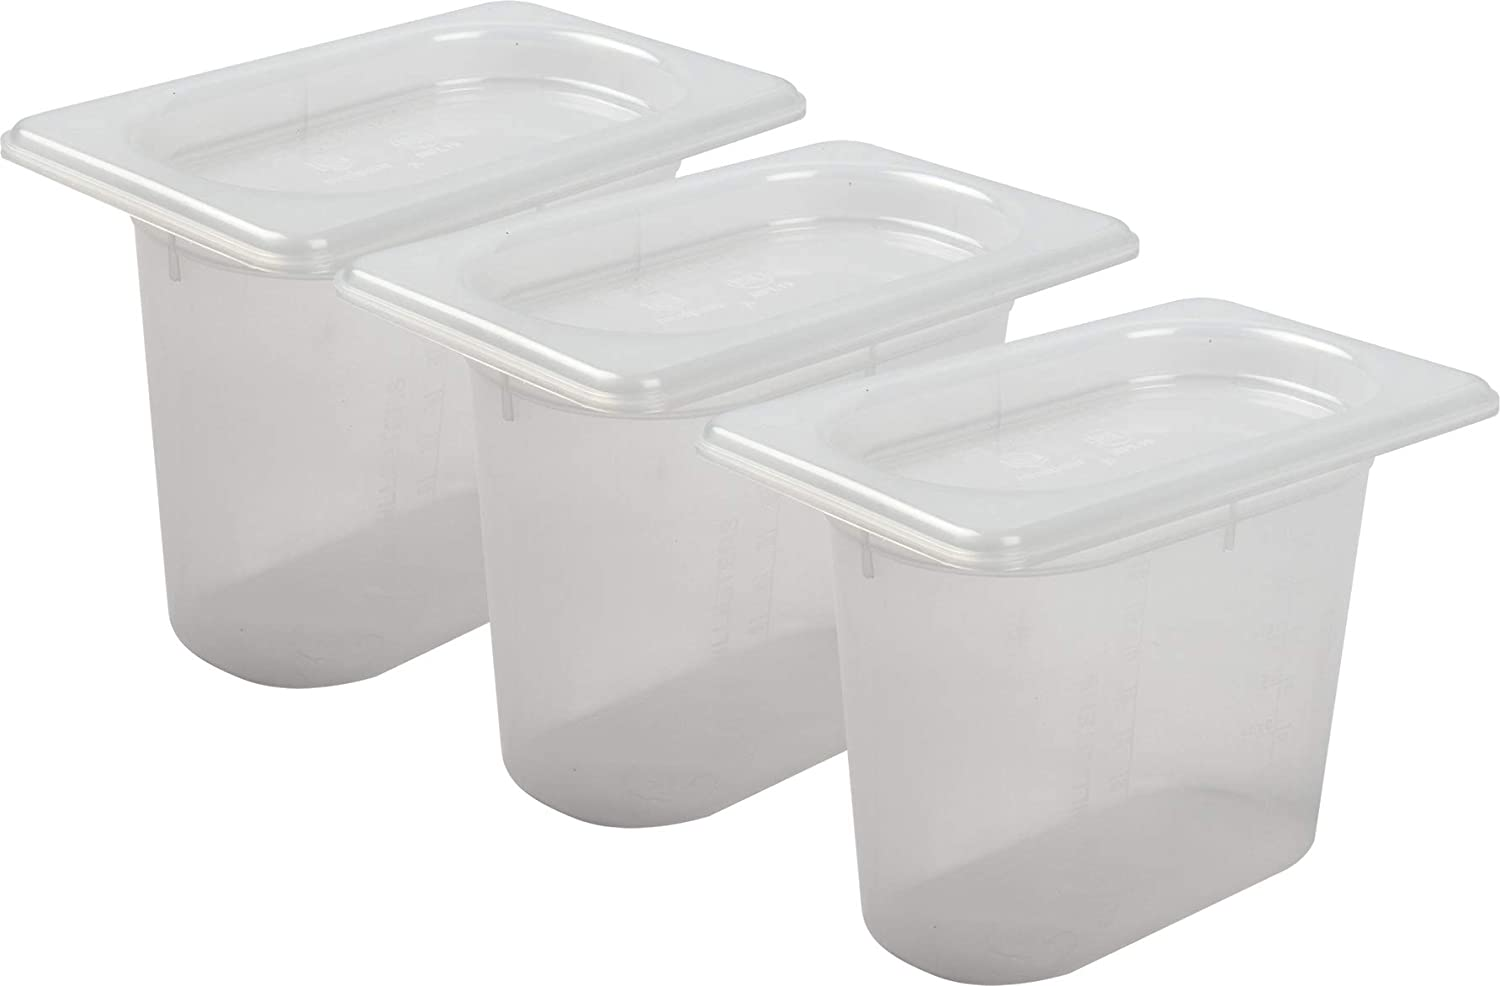 San Jamar MP19RD Mod Pans 1/9 Food Pan with Lid, Retail Pack, 1 Quart (Pack of 3)